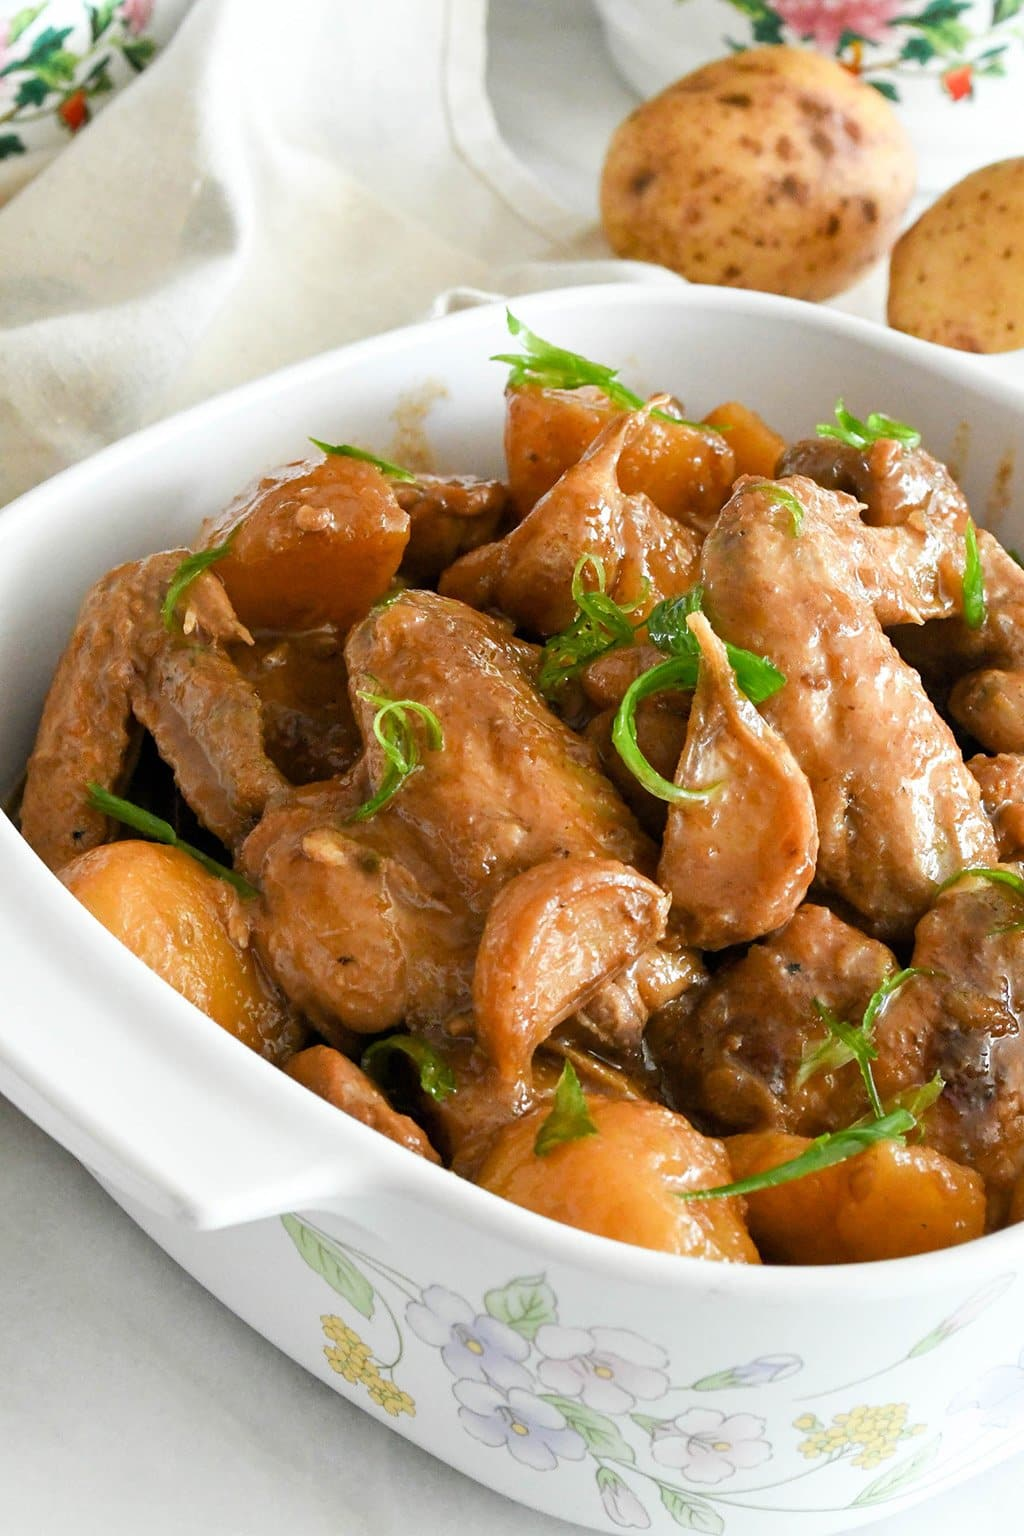 Tender braised chicken with potatoes